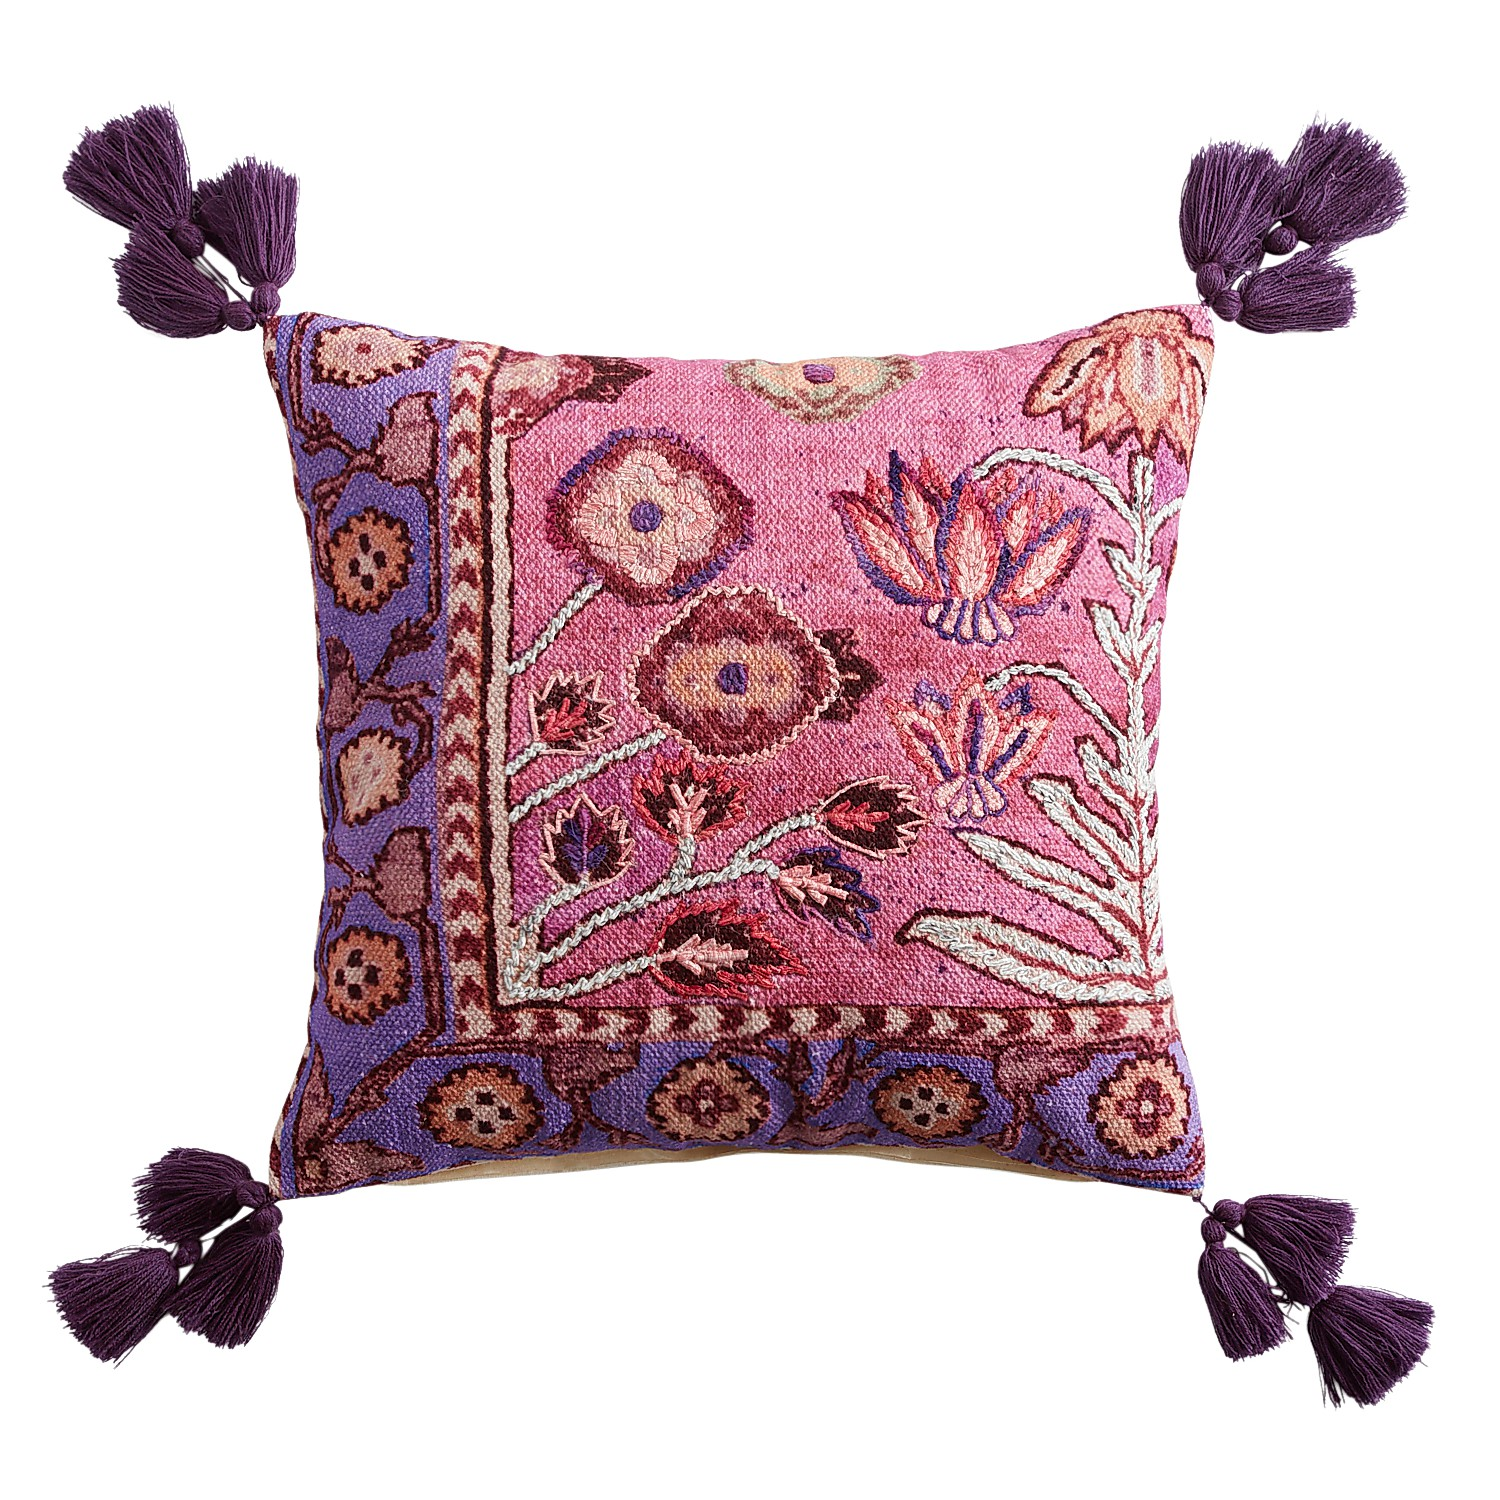 Boho Aztec Floral Pillow with Tassels